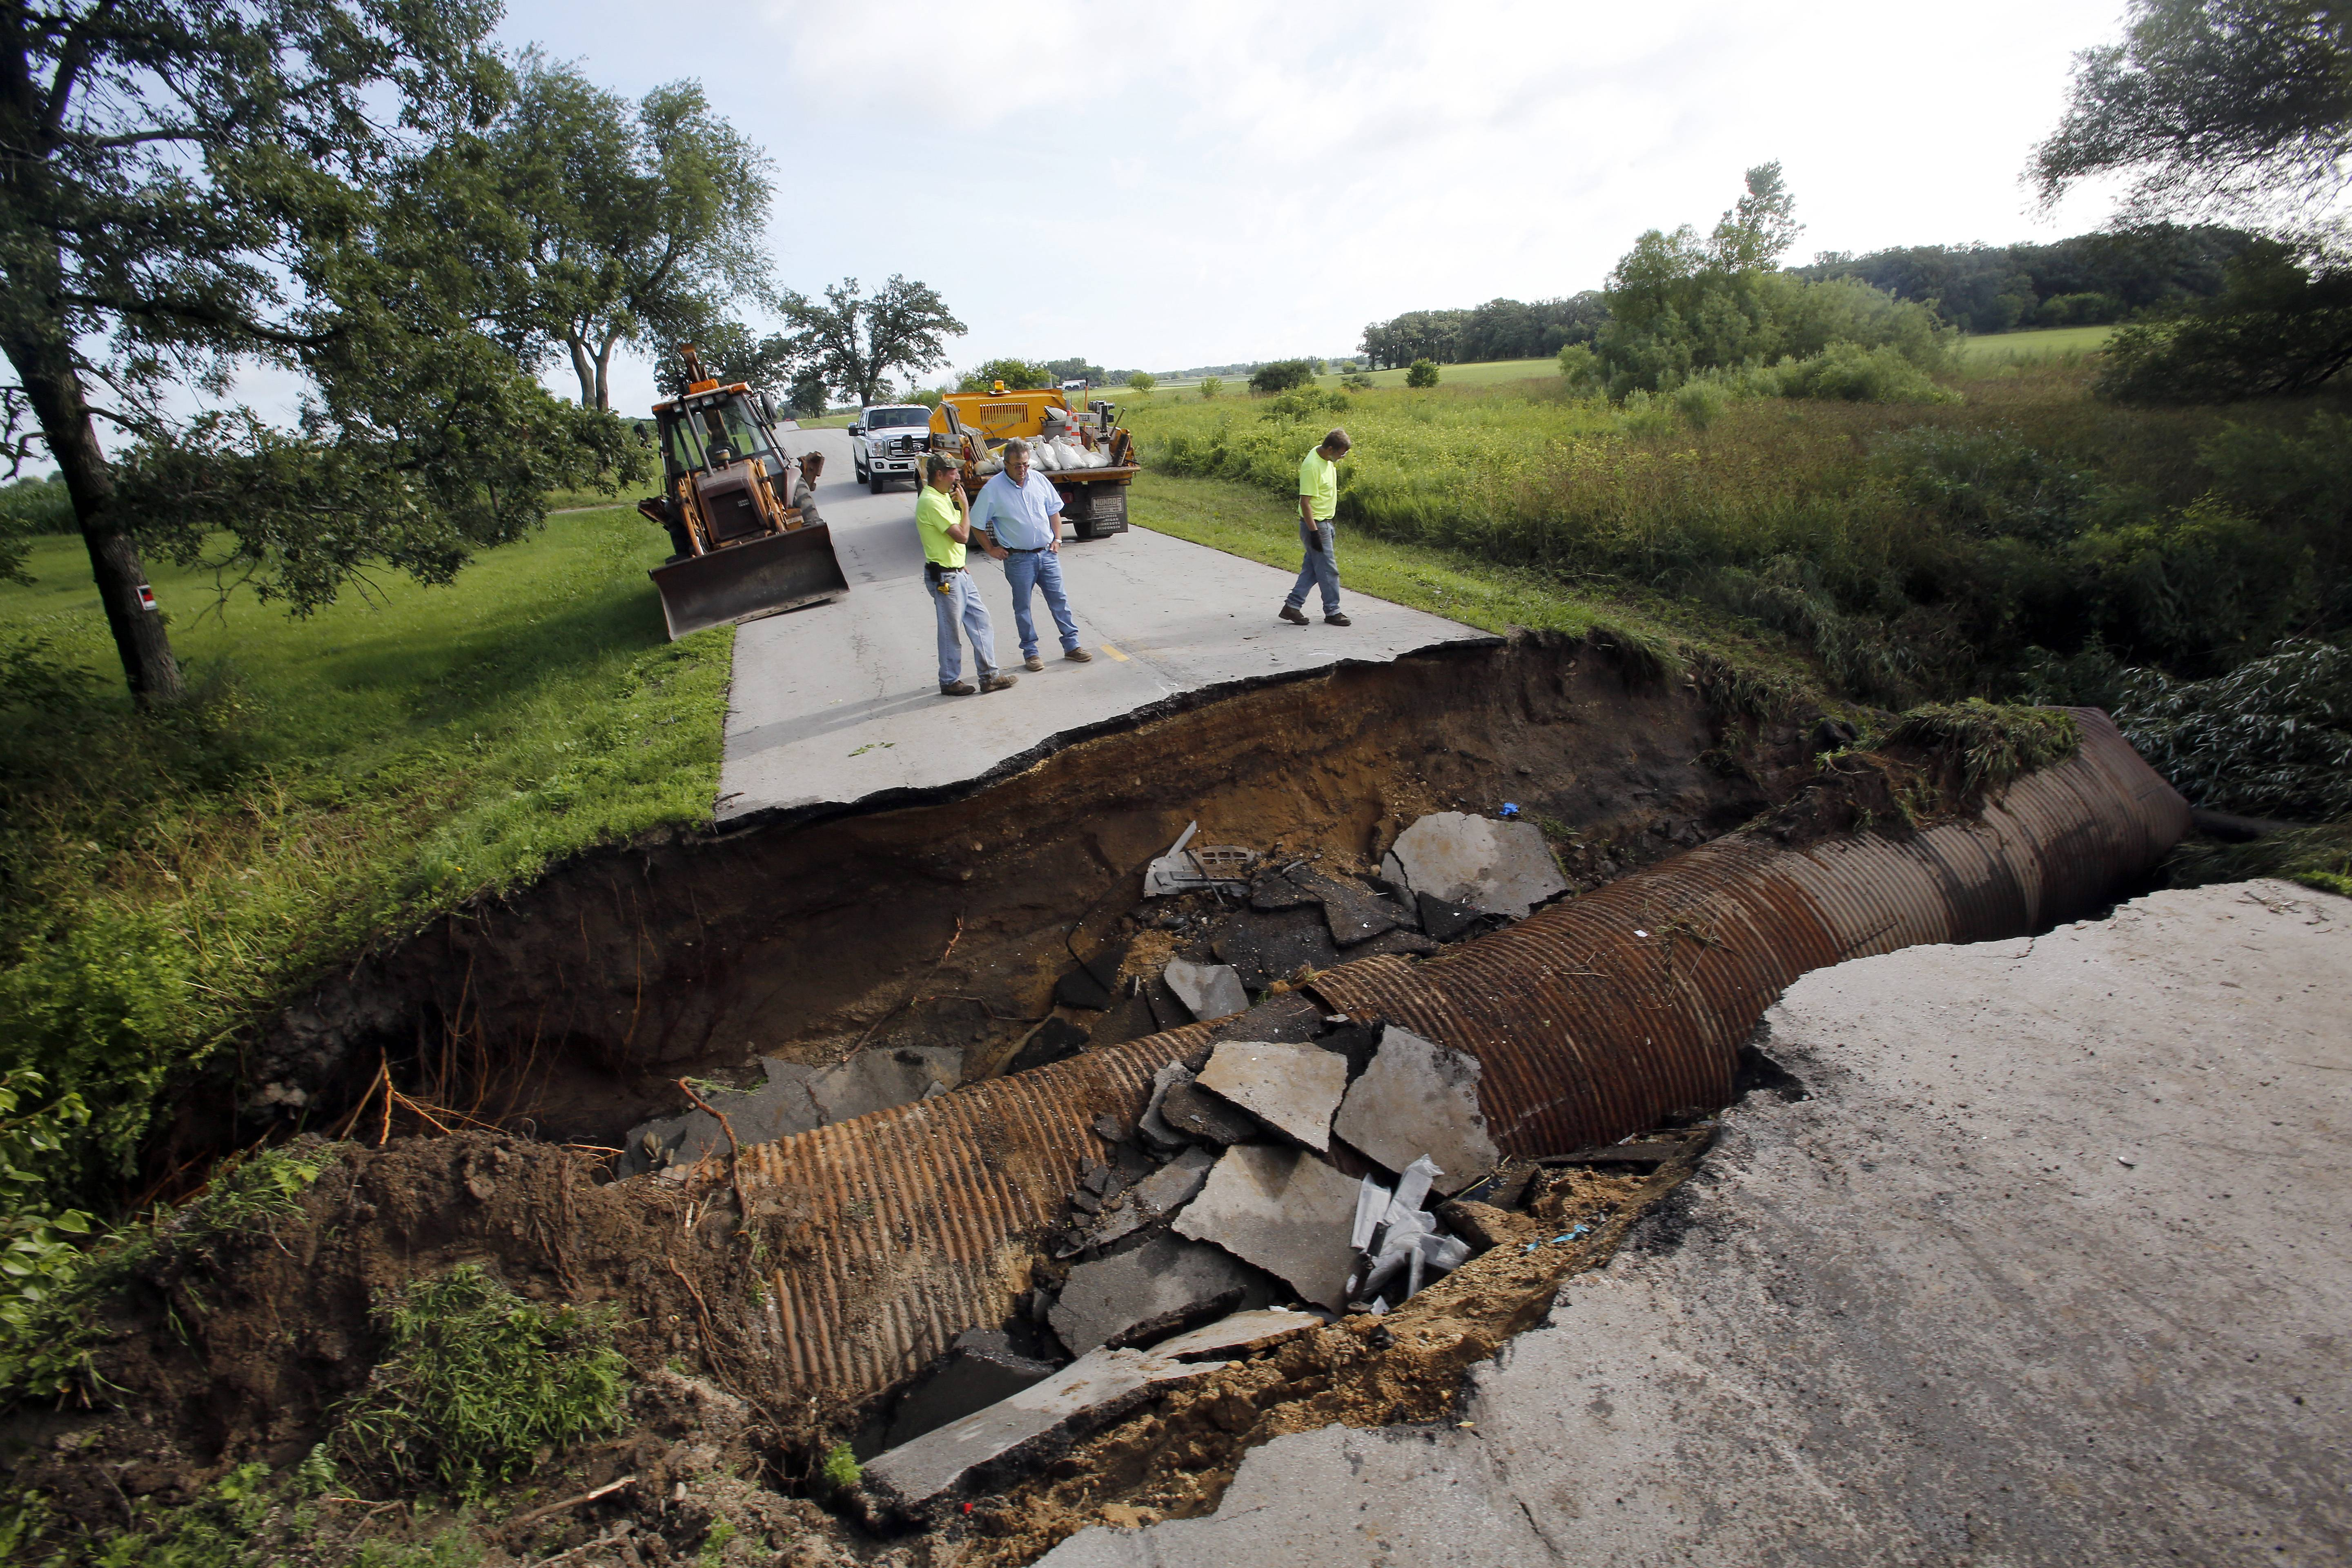 Kane County crews look over a sink hole on Thomas Road in Kane County Tuesday morning. Two cars were entrapped in the hole after driving into it earlier this morning.